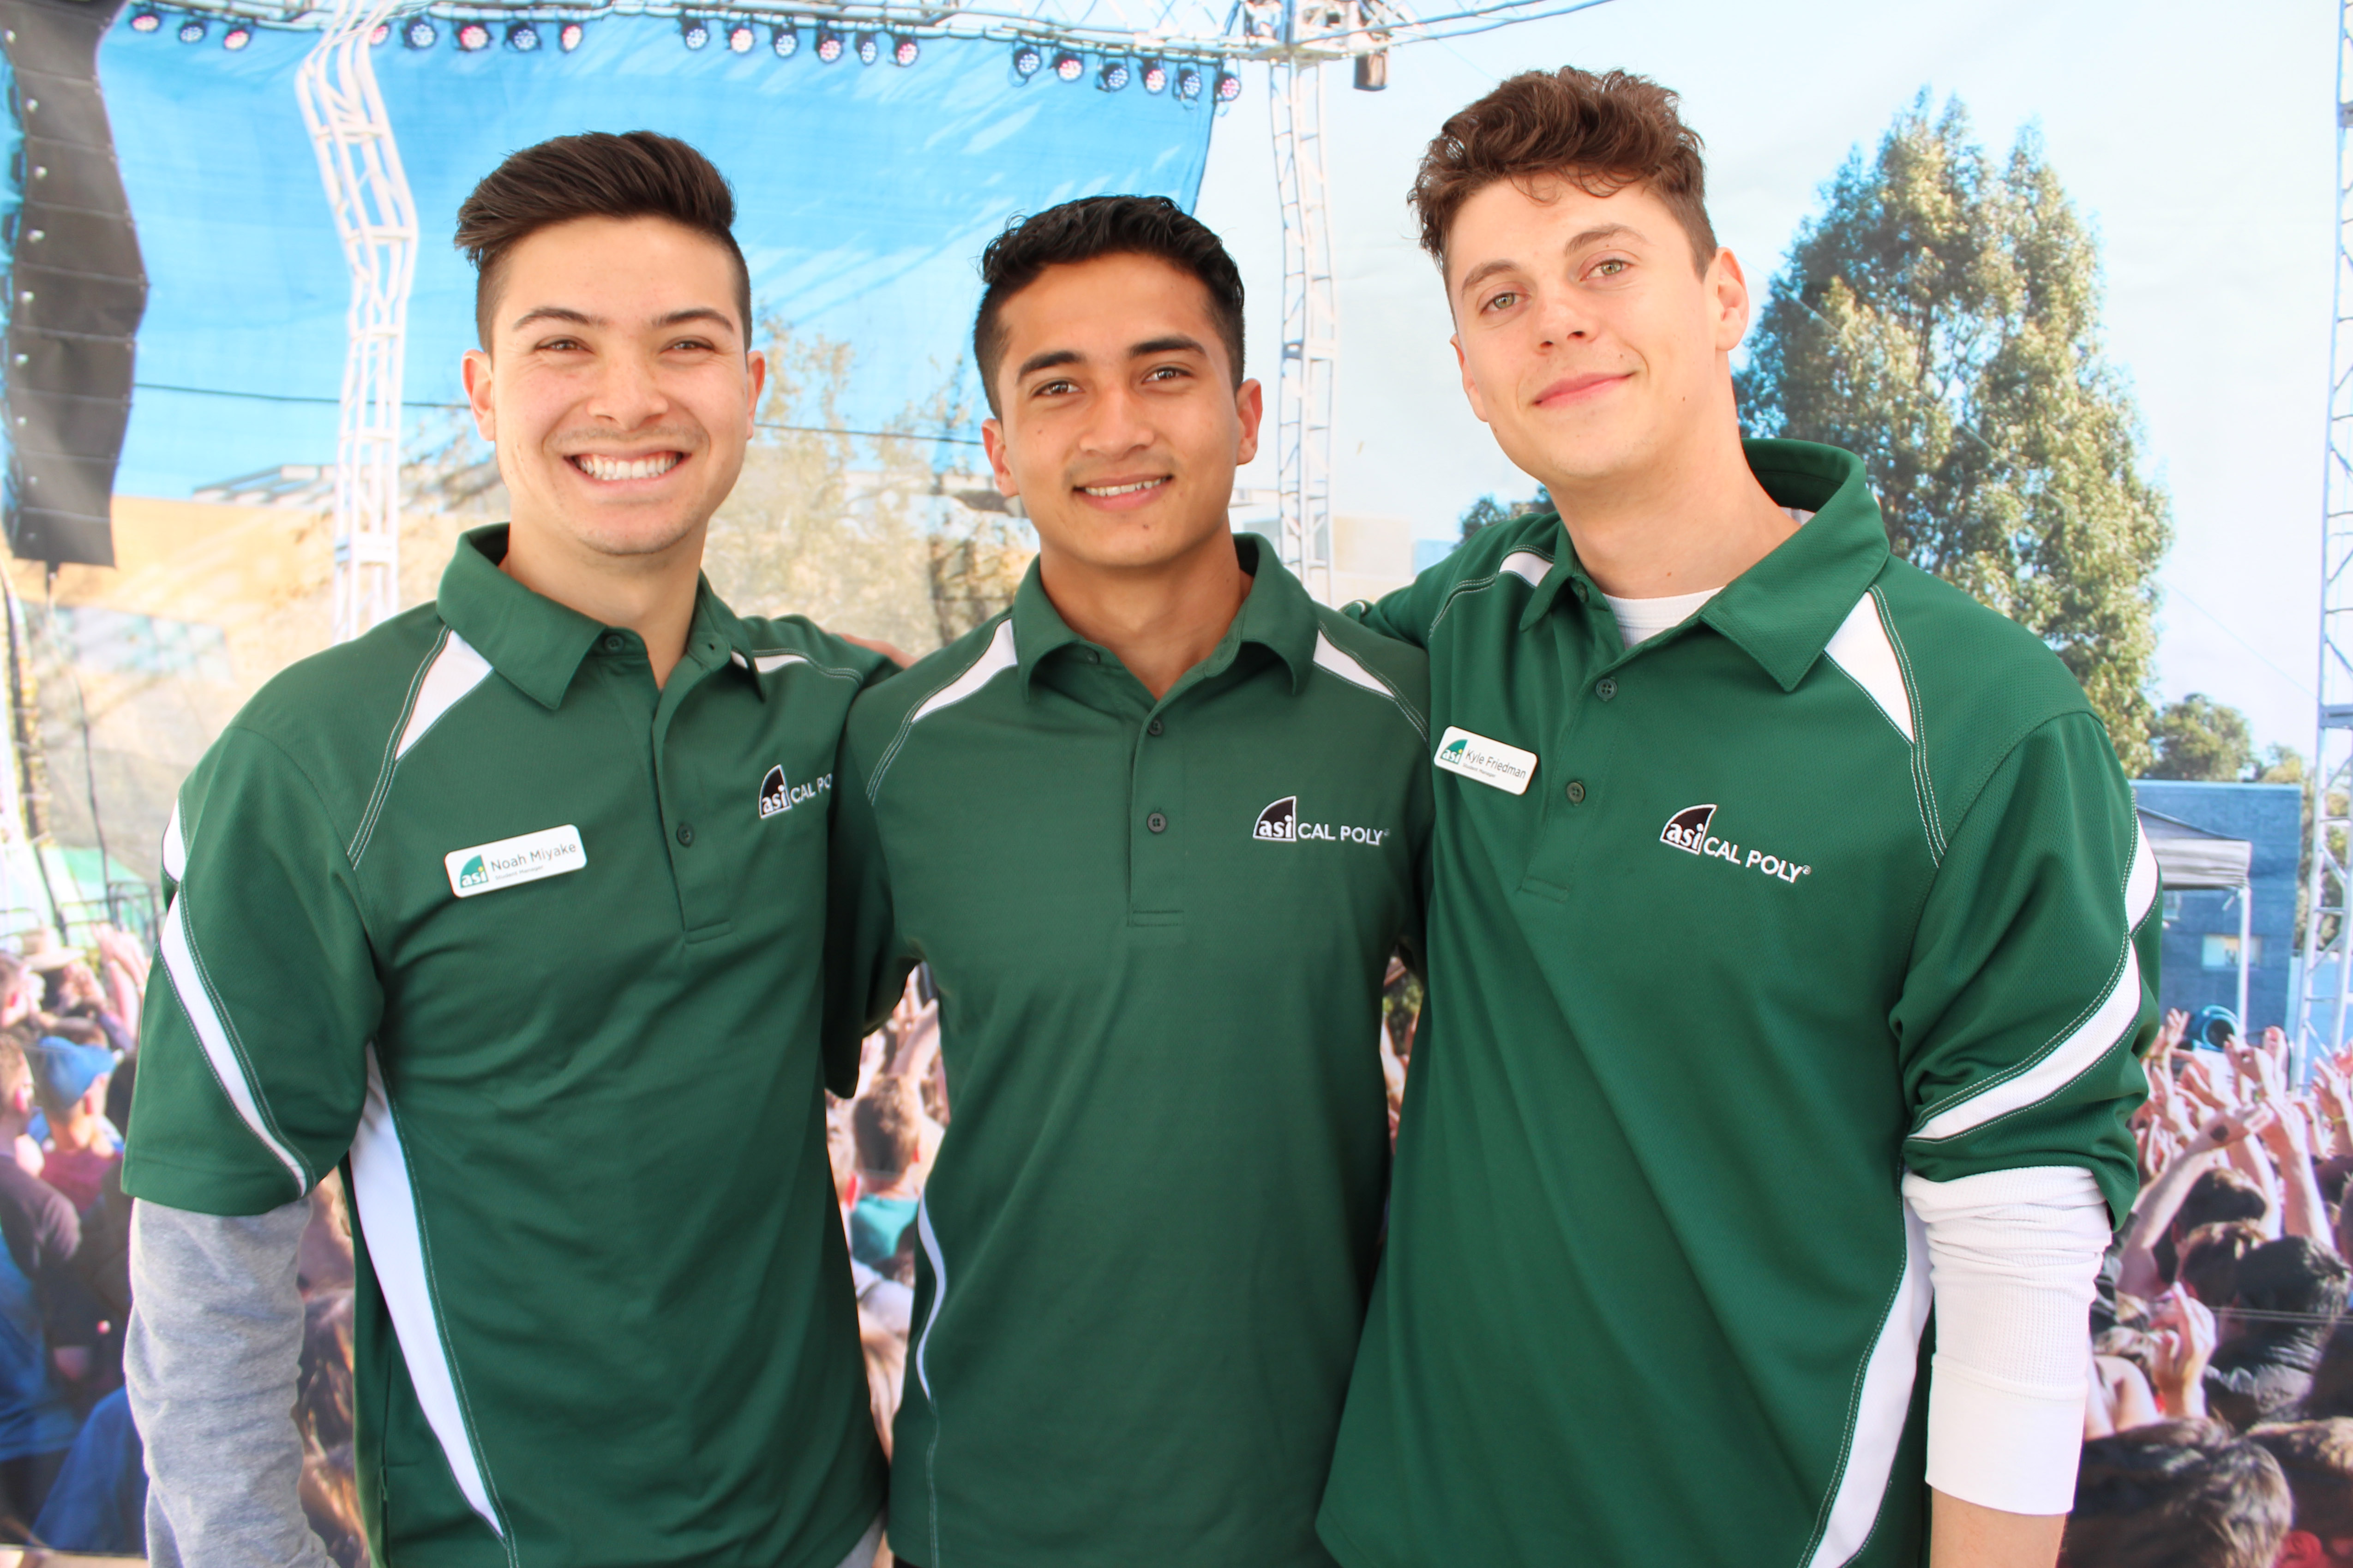 Three male students wearing green ASI polo shirts smile